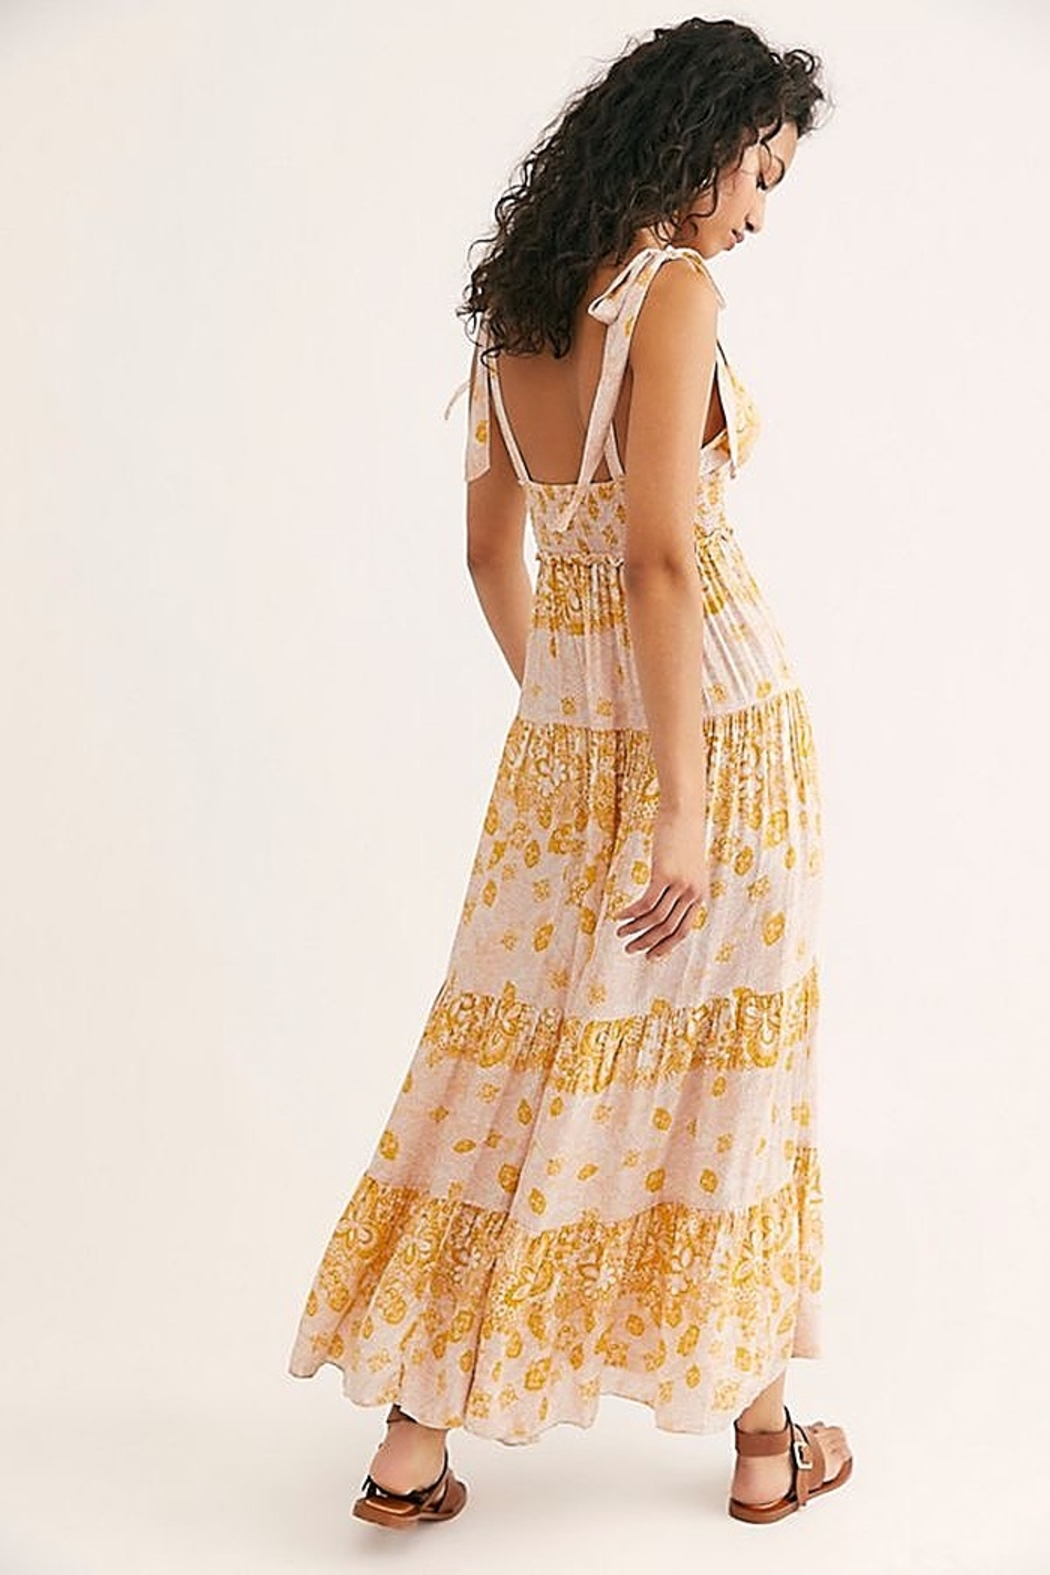 Free People Let's Smock About It Maxi - Front Full Image